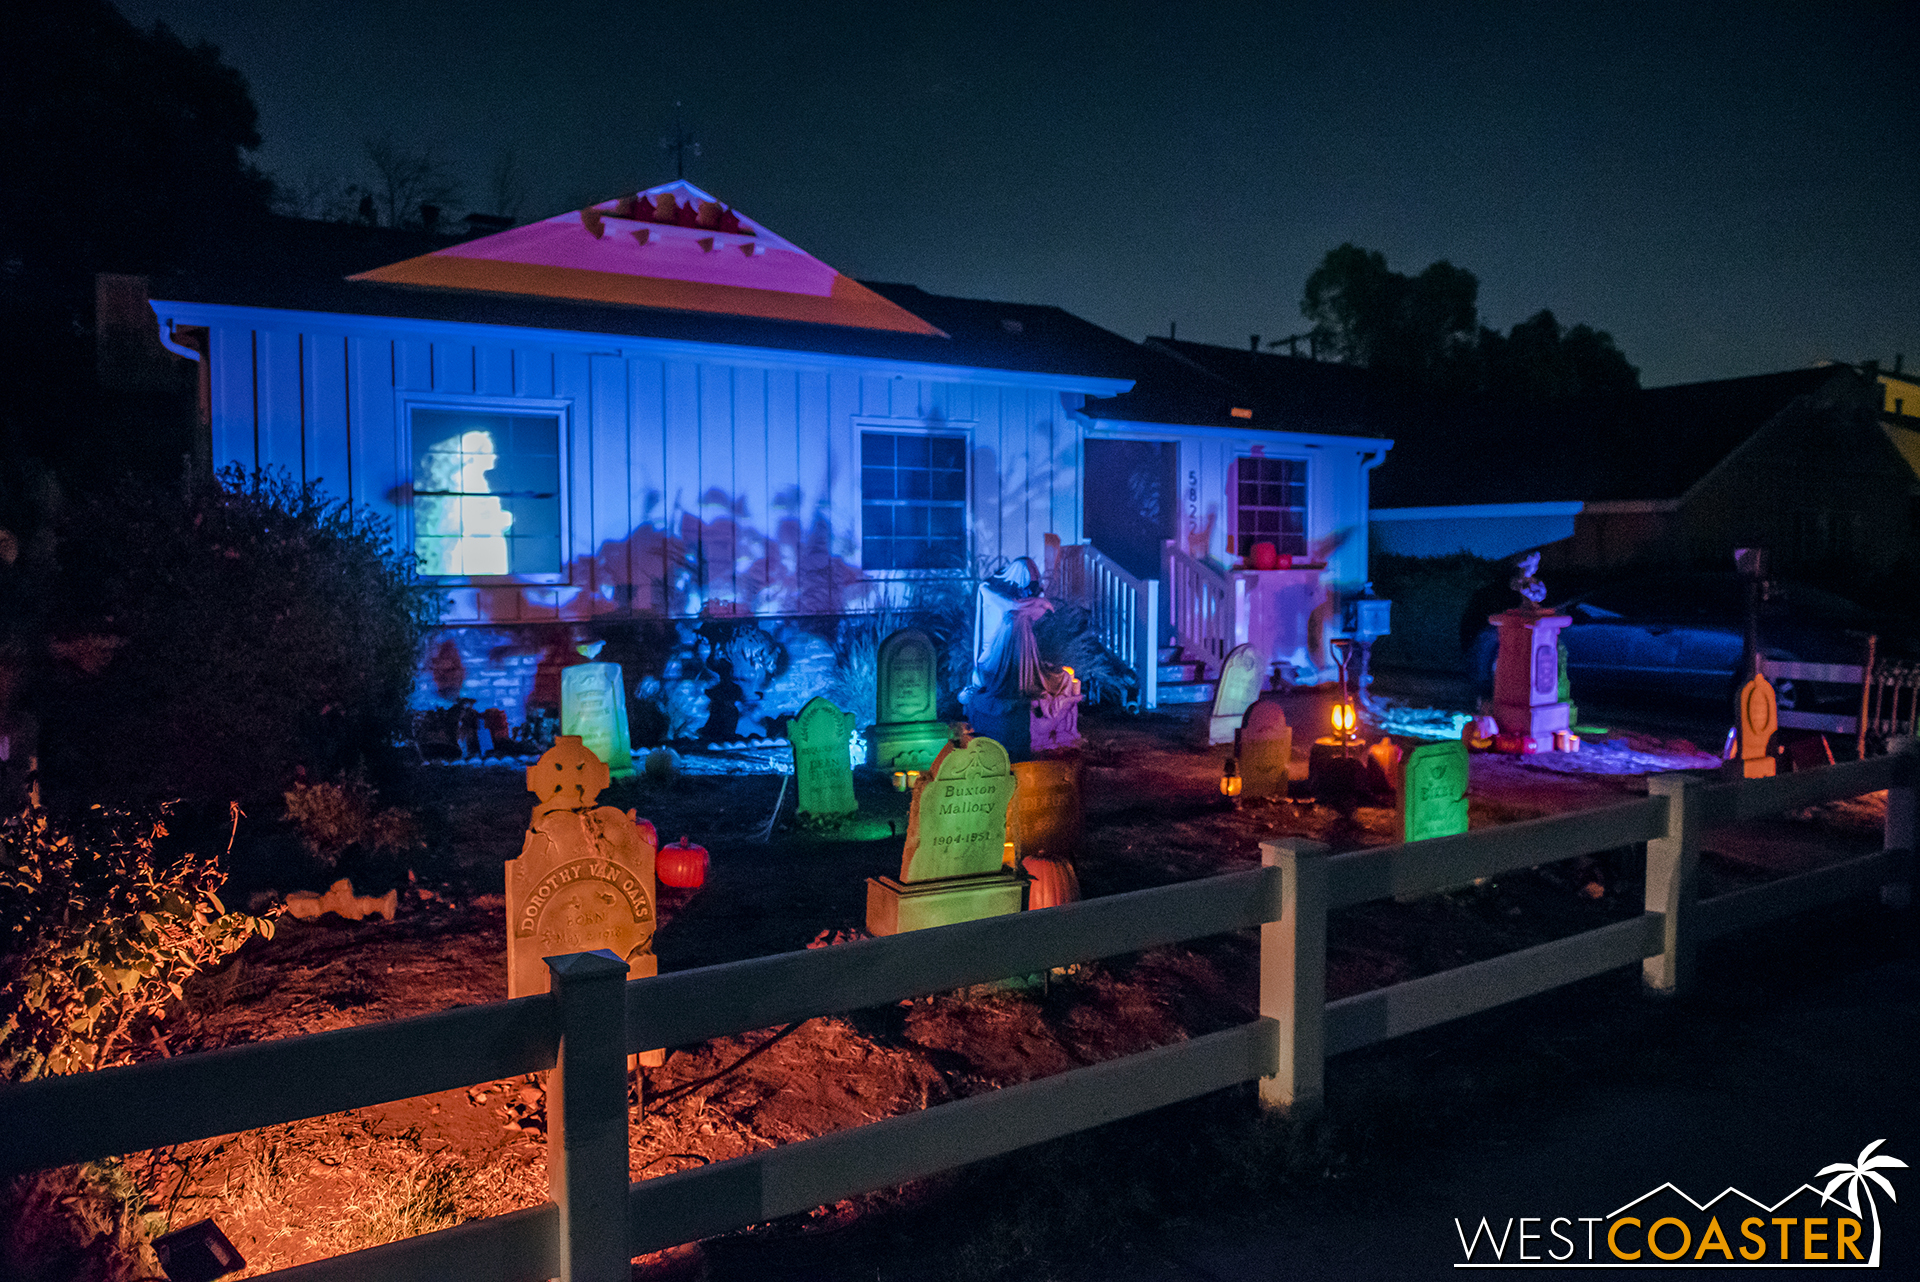 VanOaks Cemetery is a yard display, not a haunt, but the detail and craftsmanship are superb, and literally everything here is custom and personally fabricated!